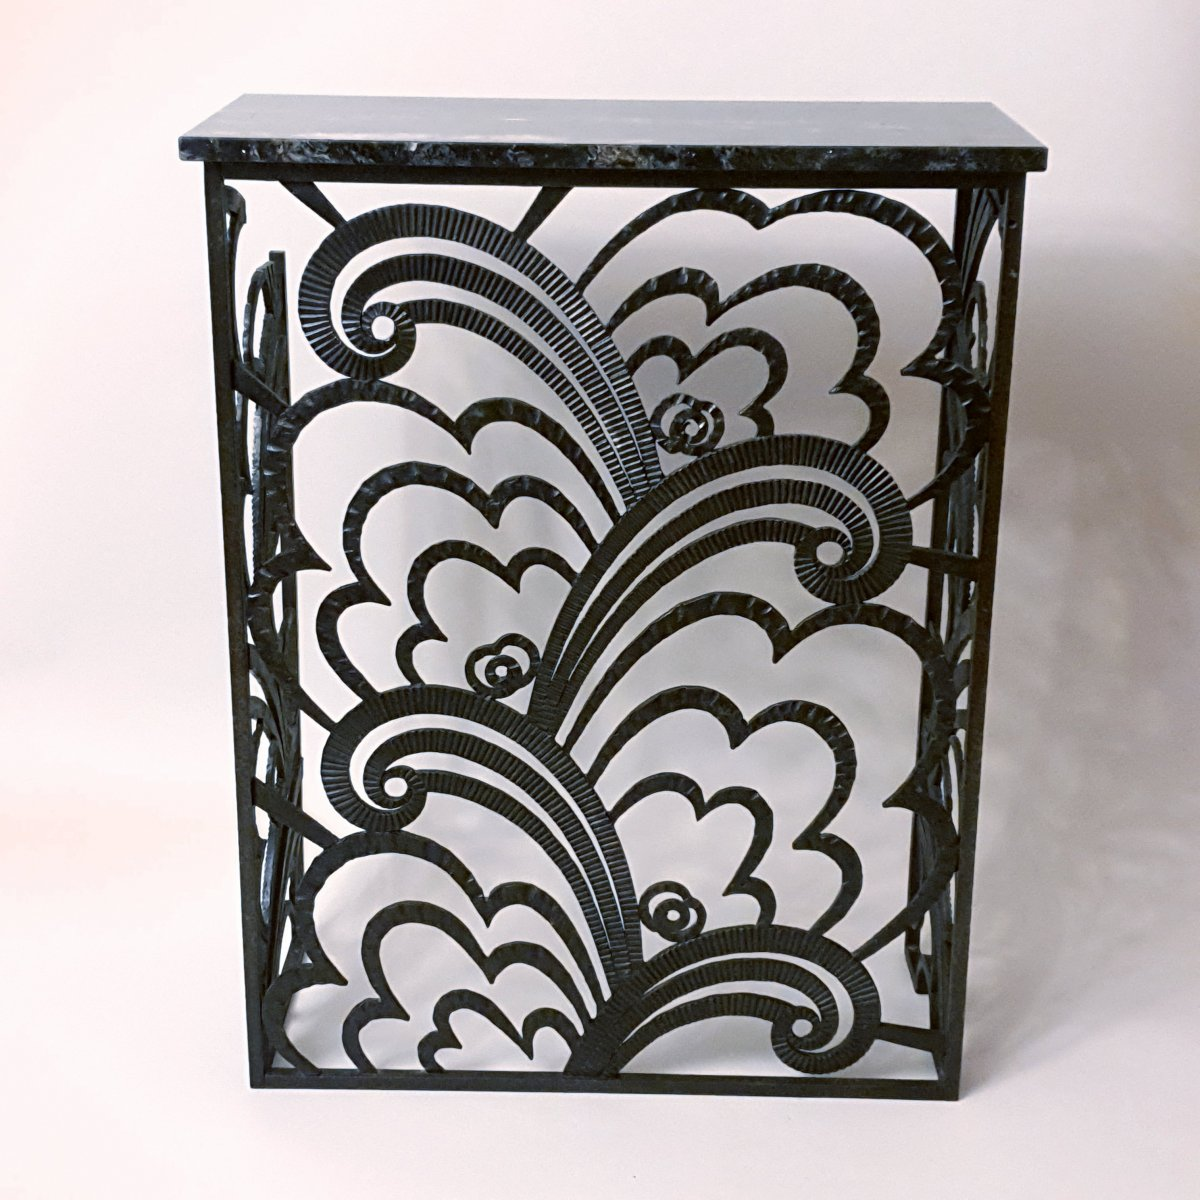 Art Deco Console Radiator Cover Wrought Iron Signed P Kiss Consoles